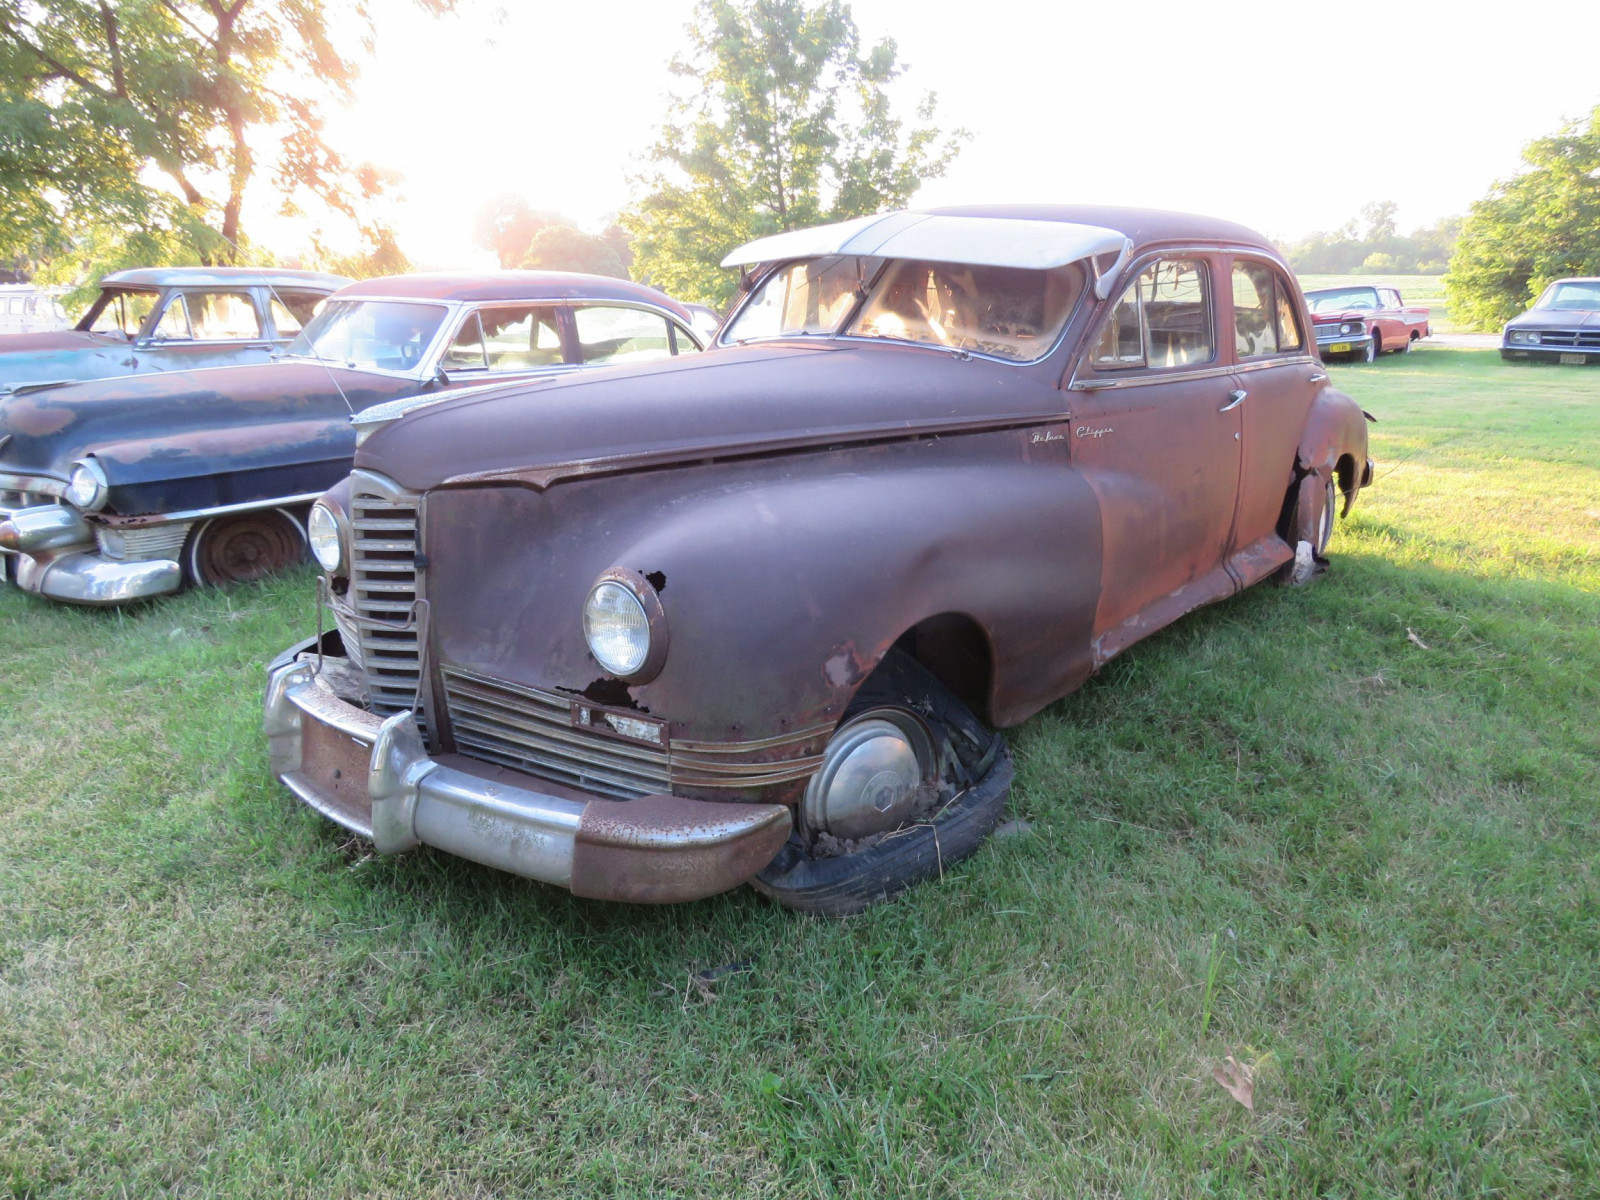 1948 Packard Sedan for parts - Image 3